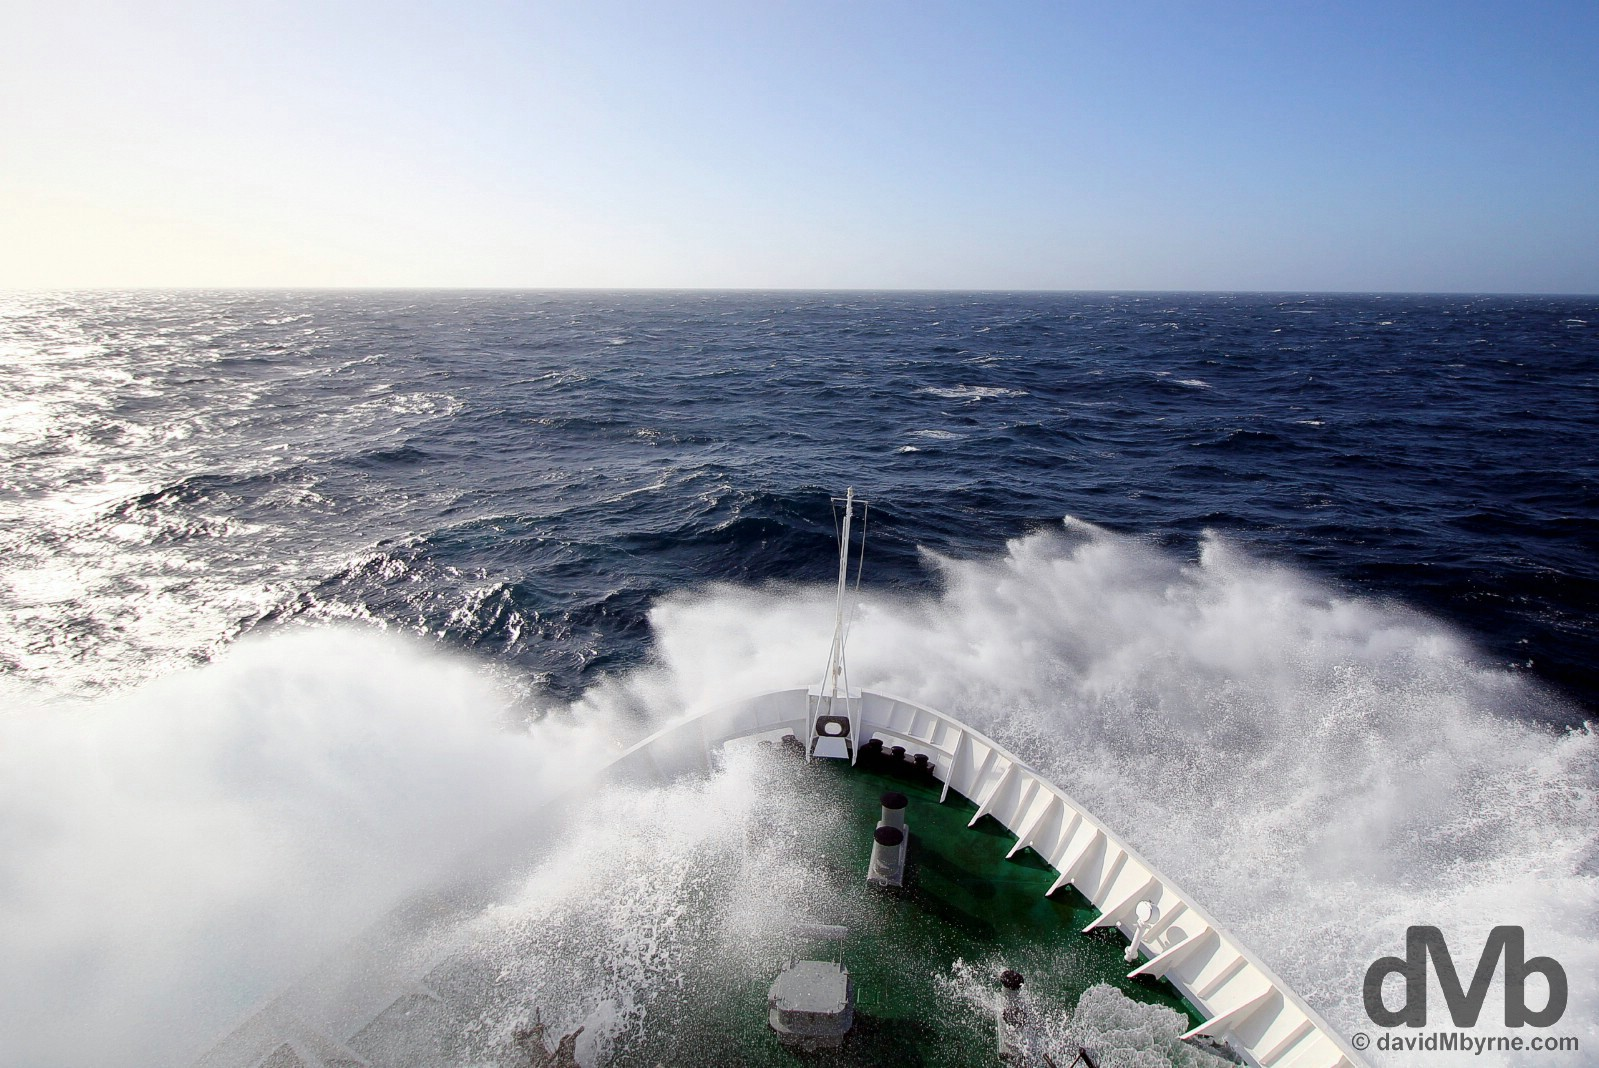 Northbound on the Drake Passage. December 3, 2015.